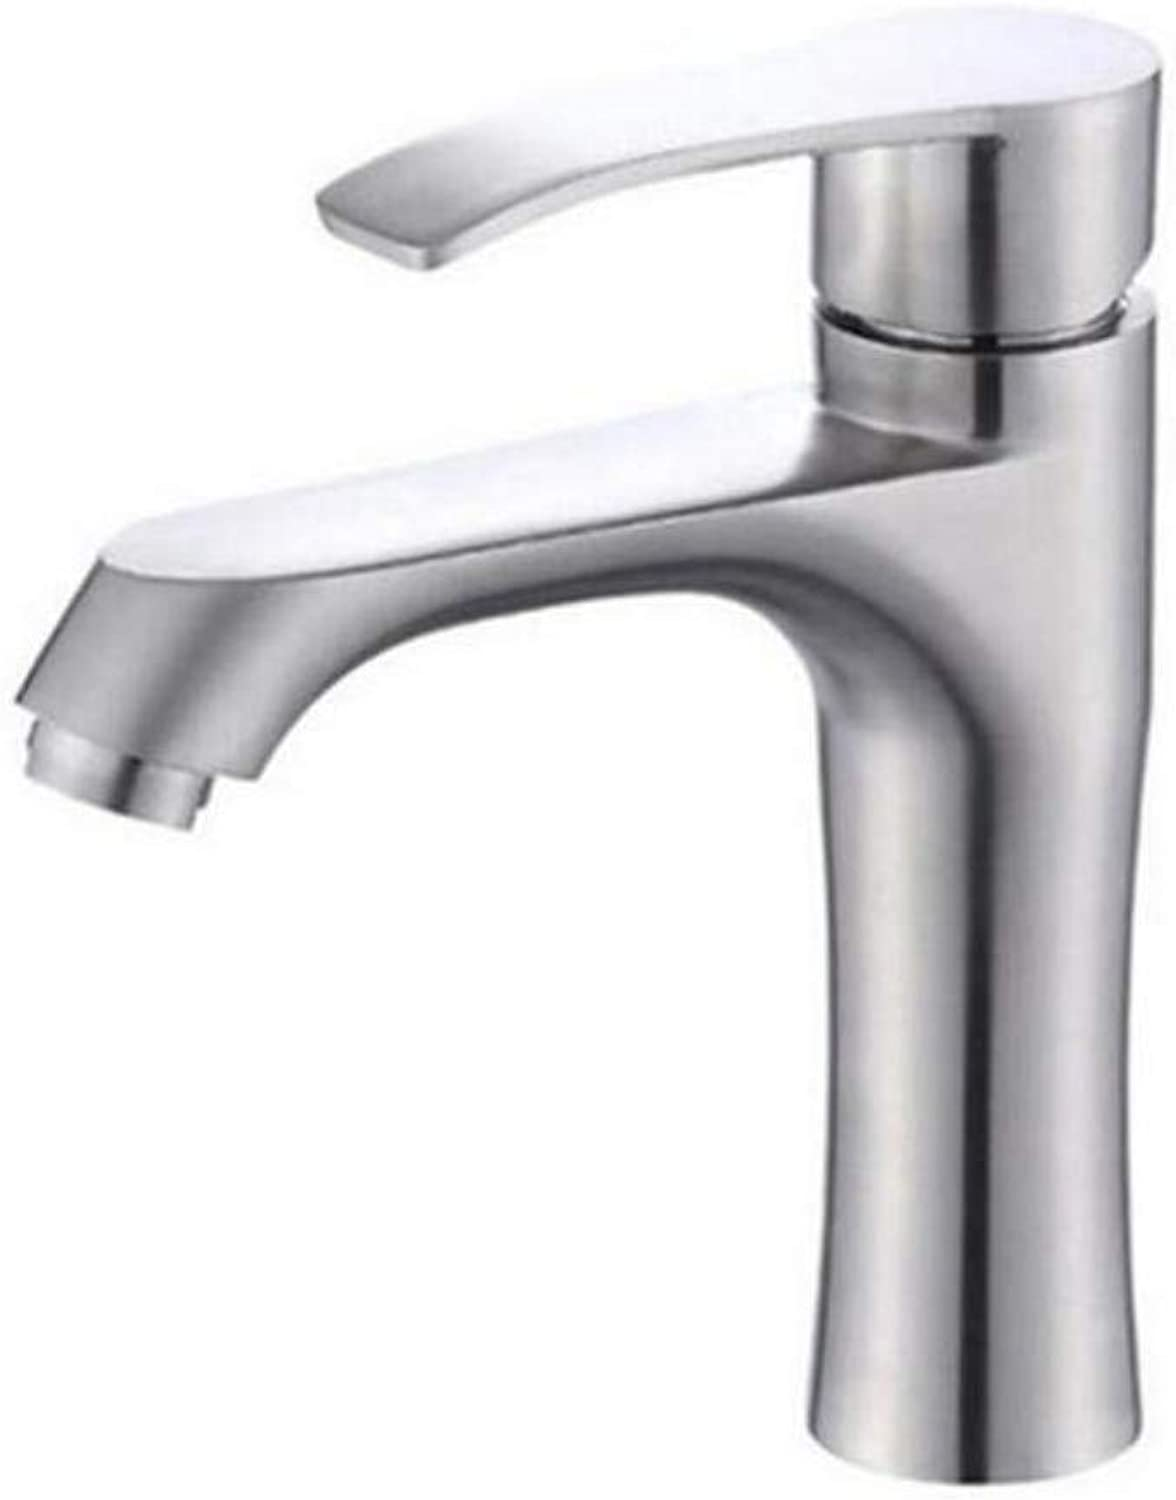 Basin Taps Swivel Spout Faucet Modern Double Basin Sink Hot and Cold Water Faucet Olecranon Basin Hot and Cold Faucet